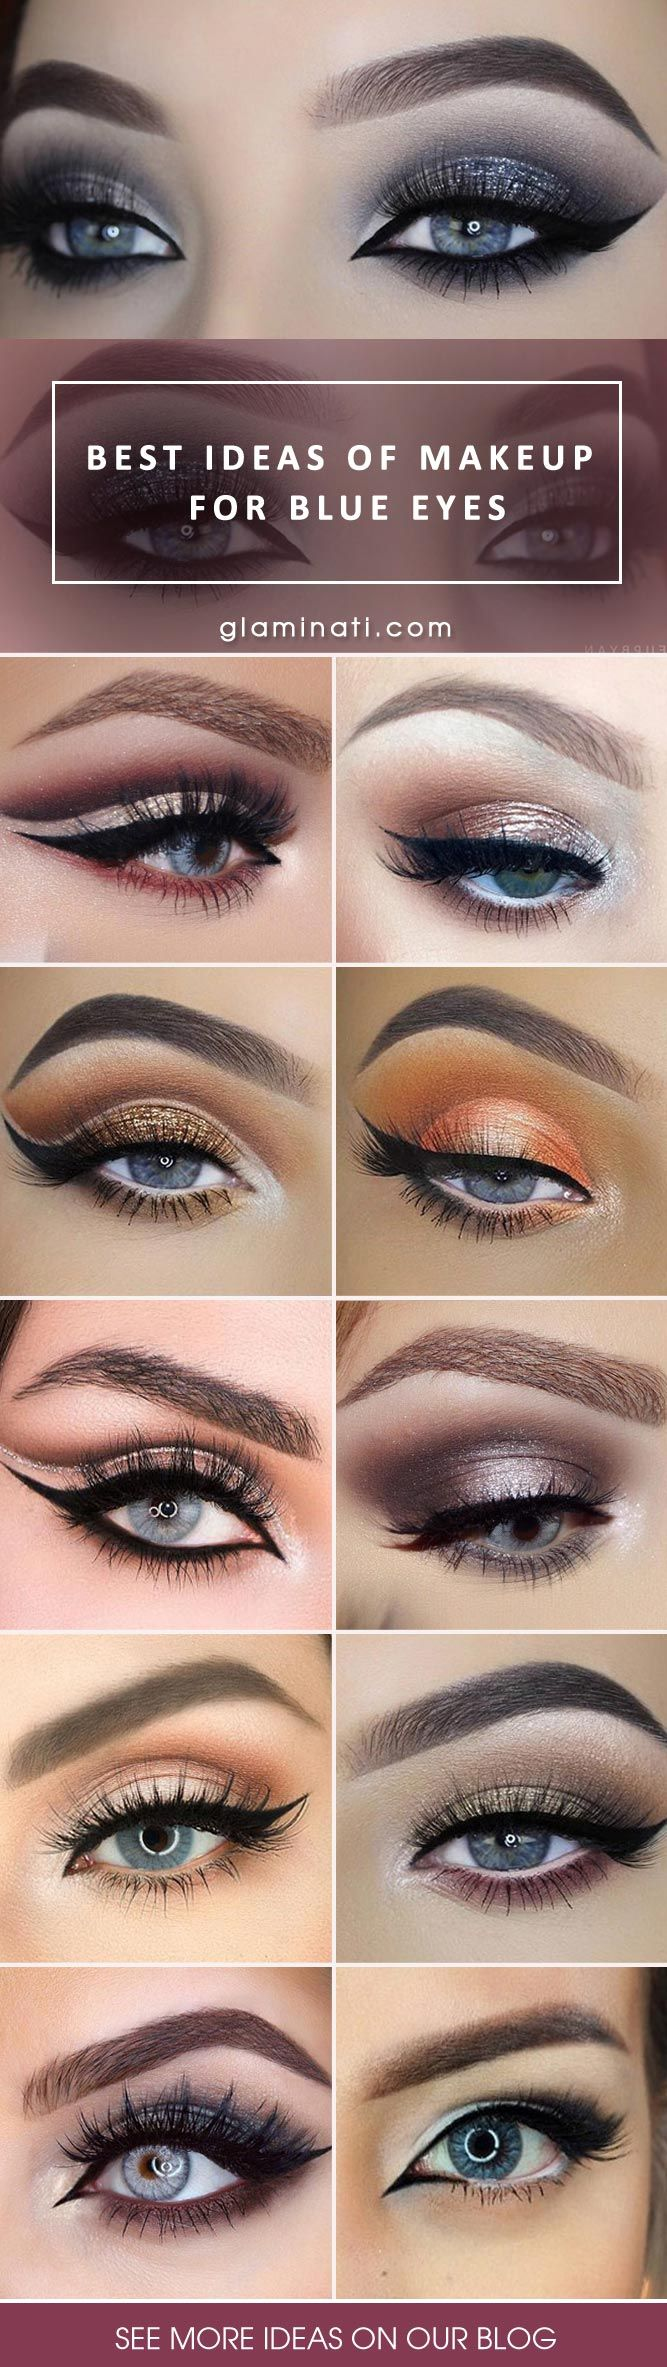 Best Ideas of Makeup for Blue Eyes